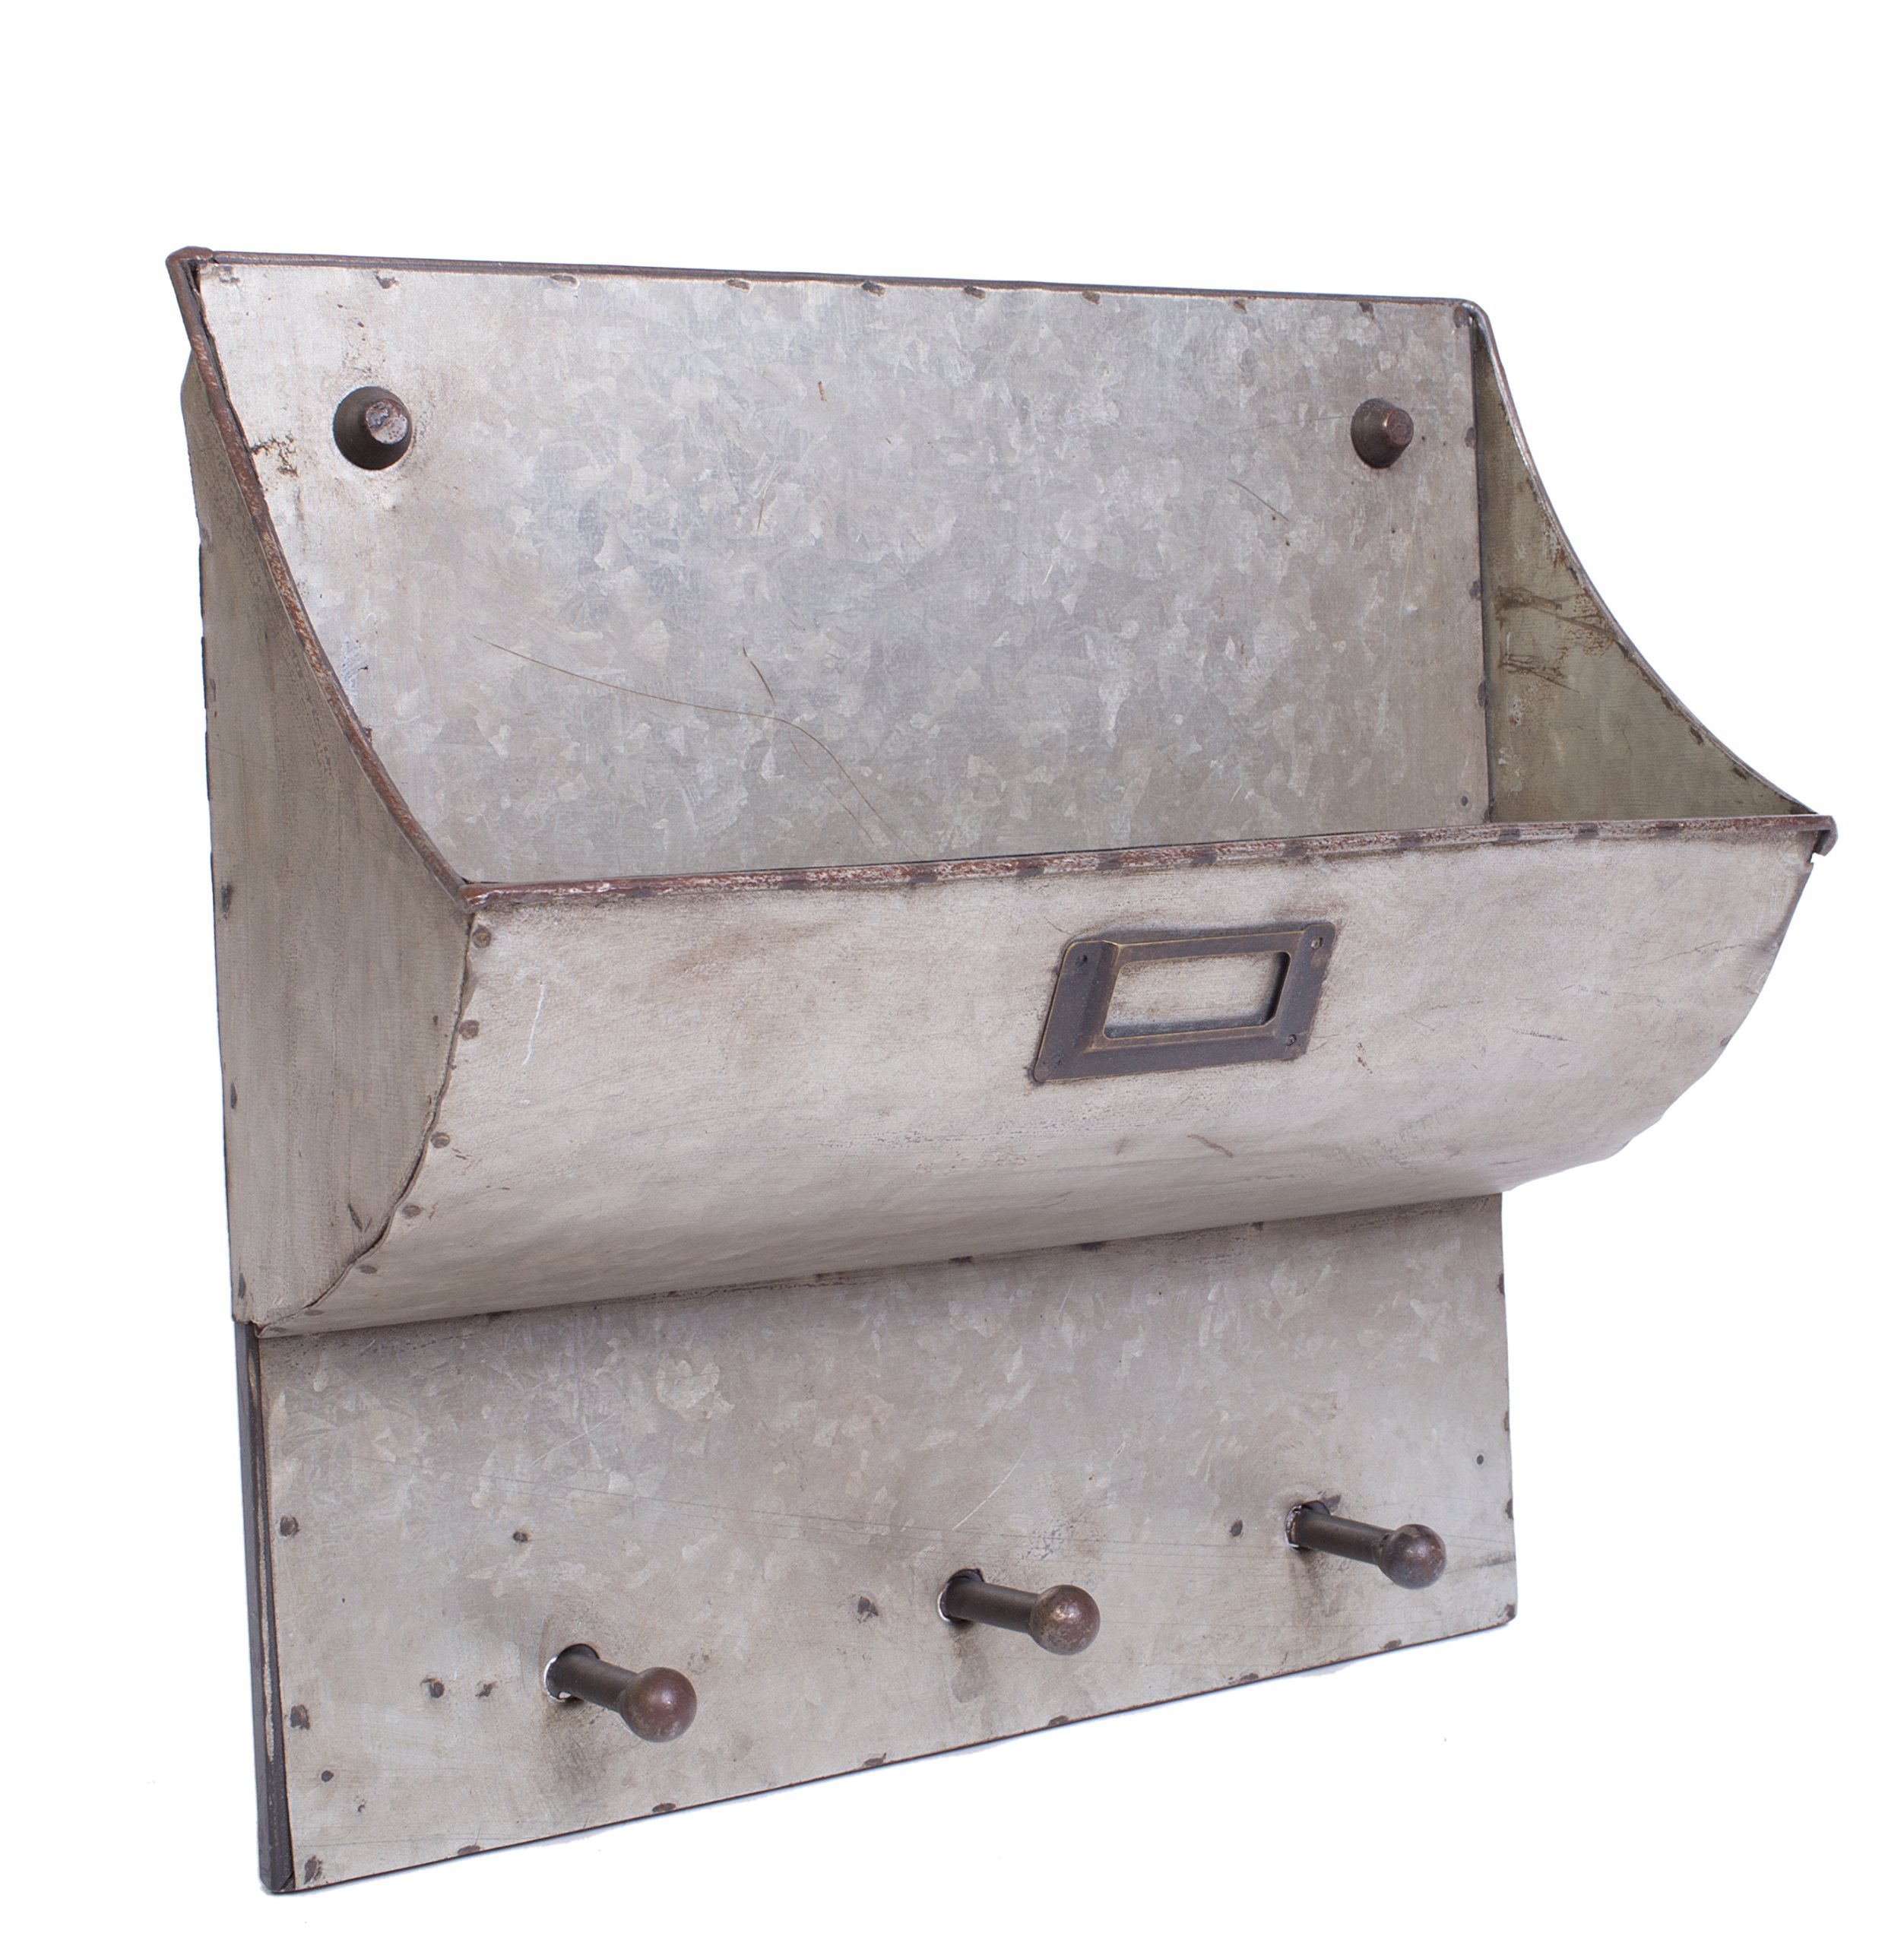 Galvanized Metal Wall Pocket with Hooks - Primitive Décor Style by Red Co. (Image #2)